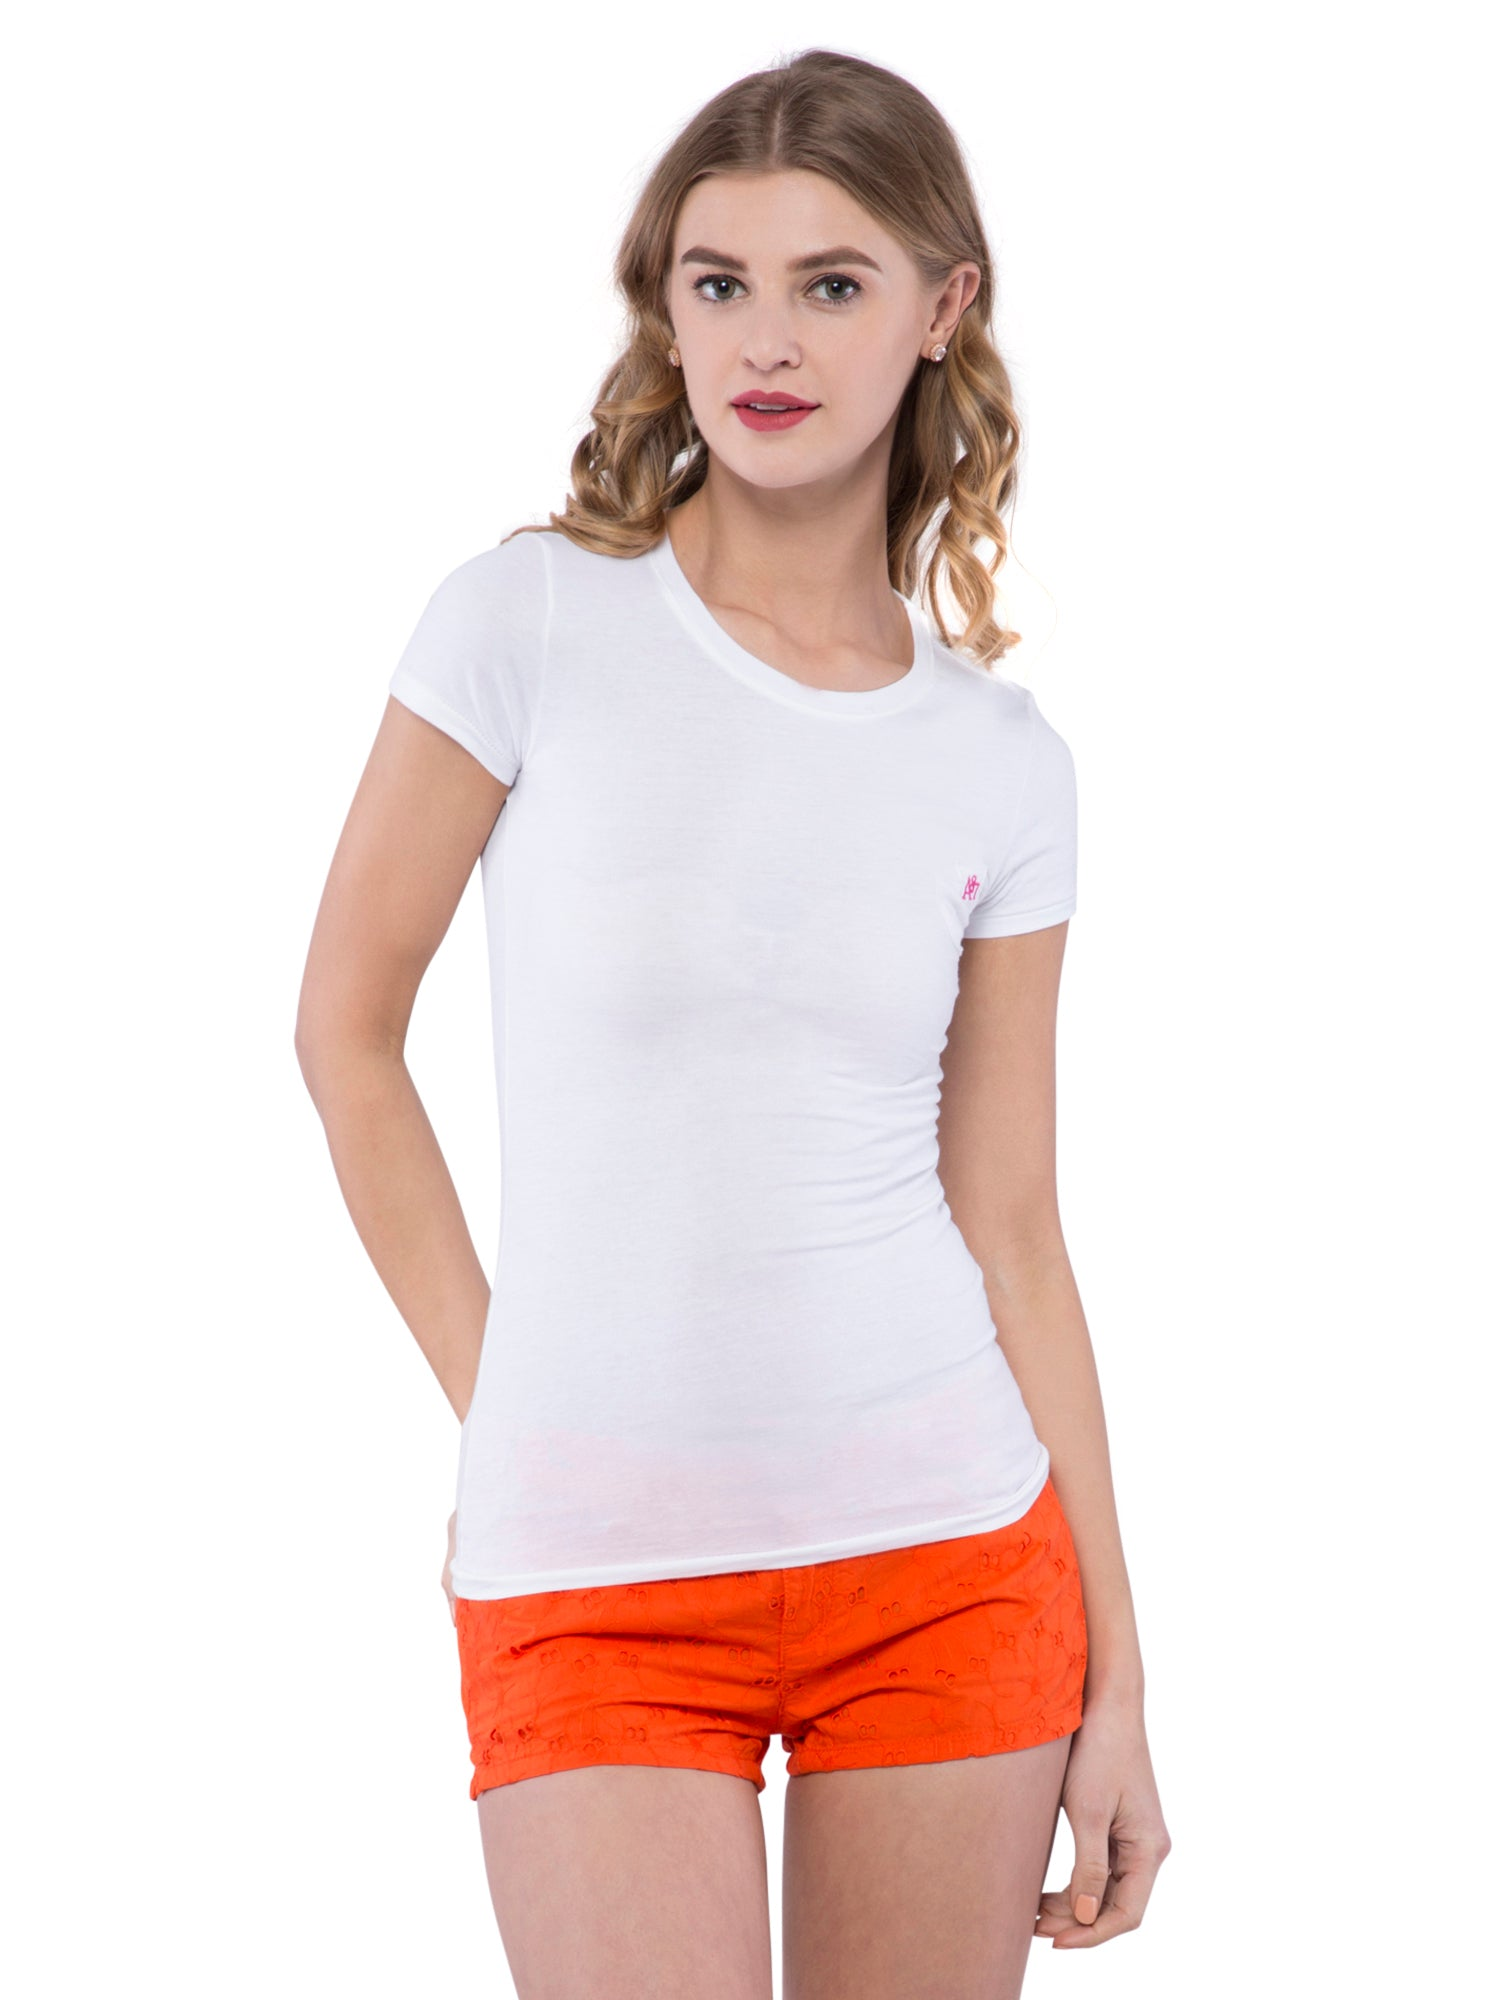 Aeropostale Women White Round Neck Pocket T-Shirt